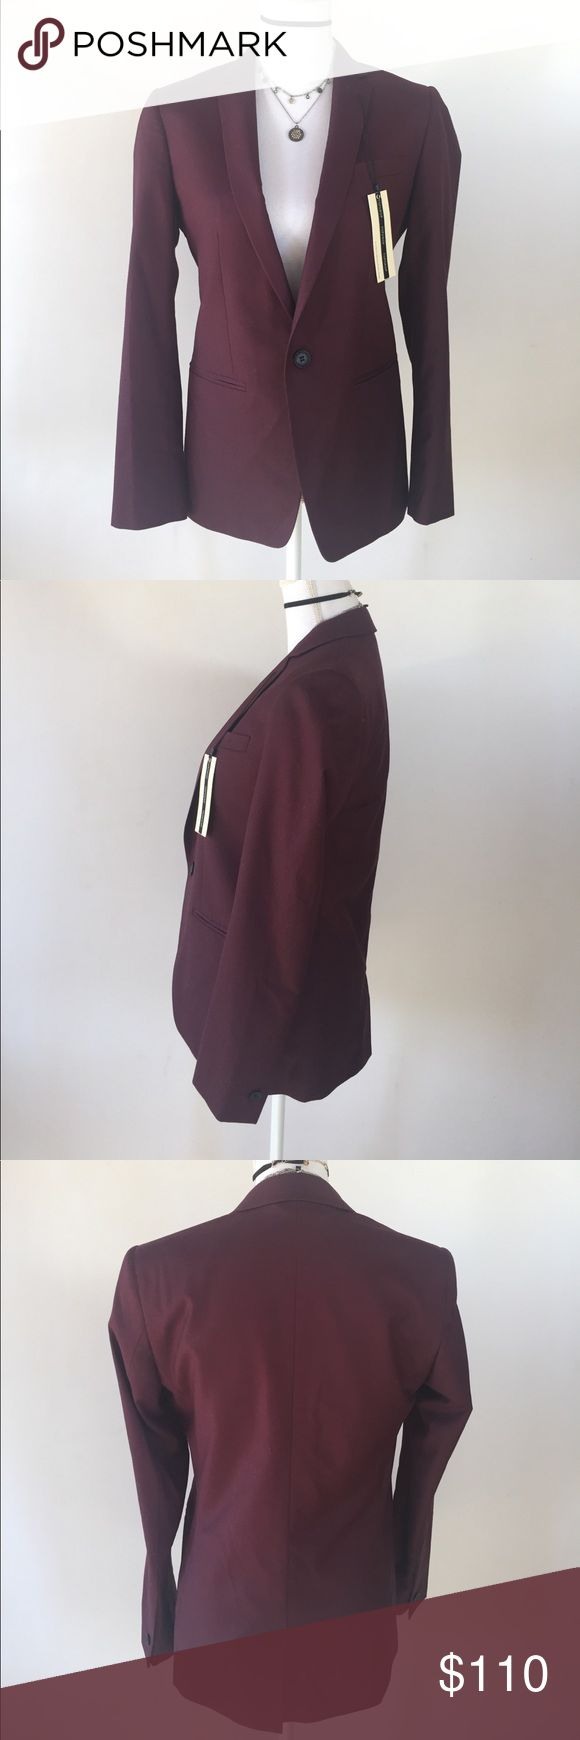 NWT Topshop Maroon Blazer, 6 This beautiful NWT Topshop Maroon Blazer, 6 is great to wear in any professional or educational setting! NWT EXCELLENT CONDITION NO DEFECTS Topshop Jackets & Coats Blazers